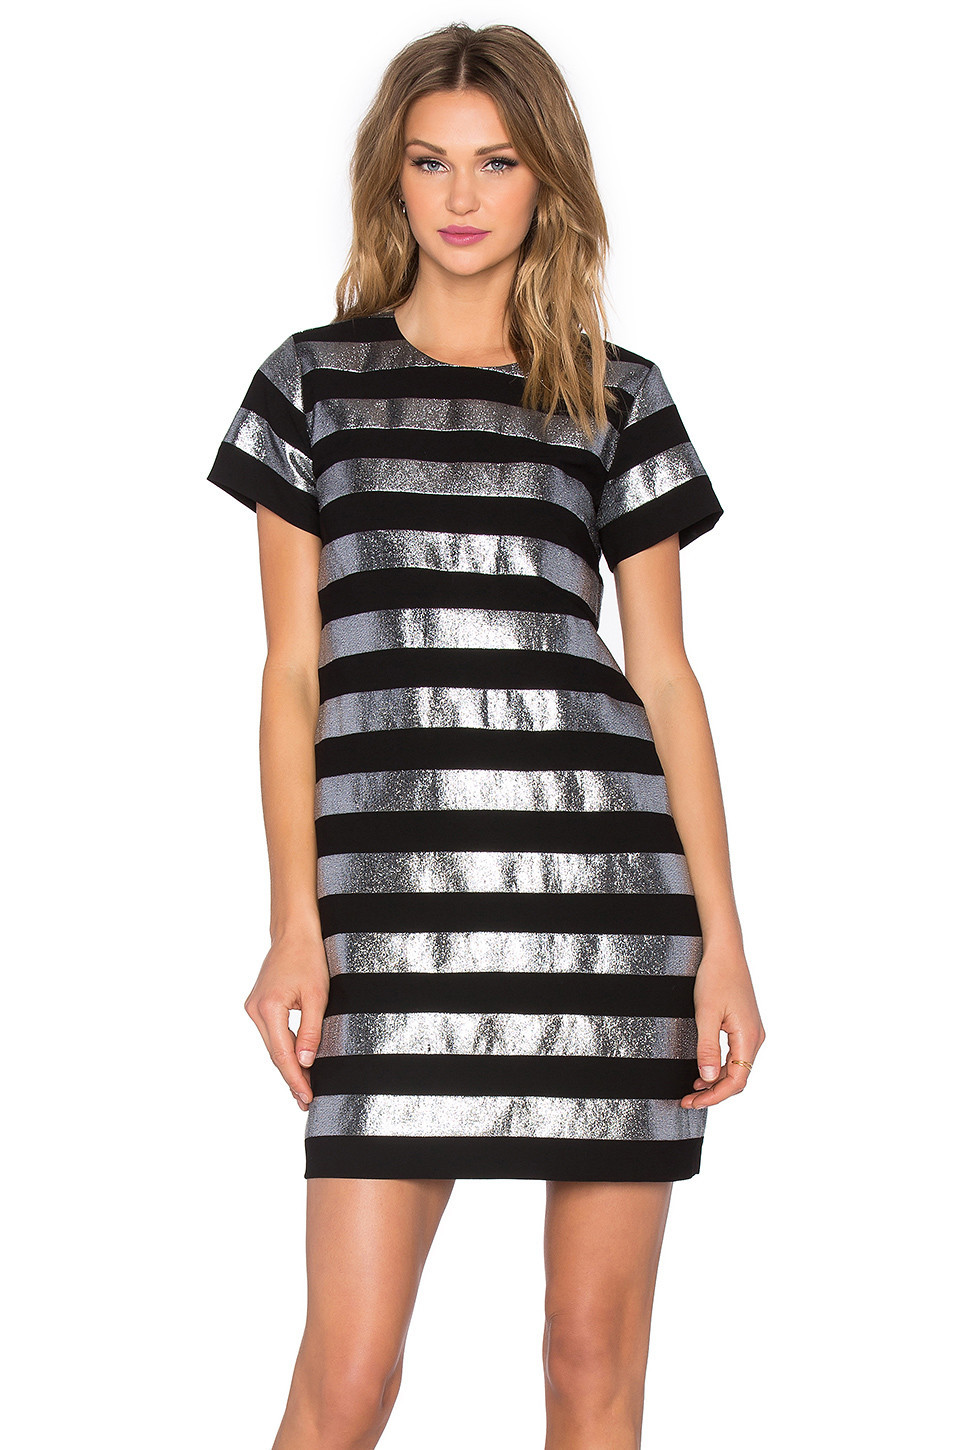 b7c3950e6542 Ellery Witch Doctor High-neck Dress in silver - Wheretoget